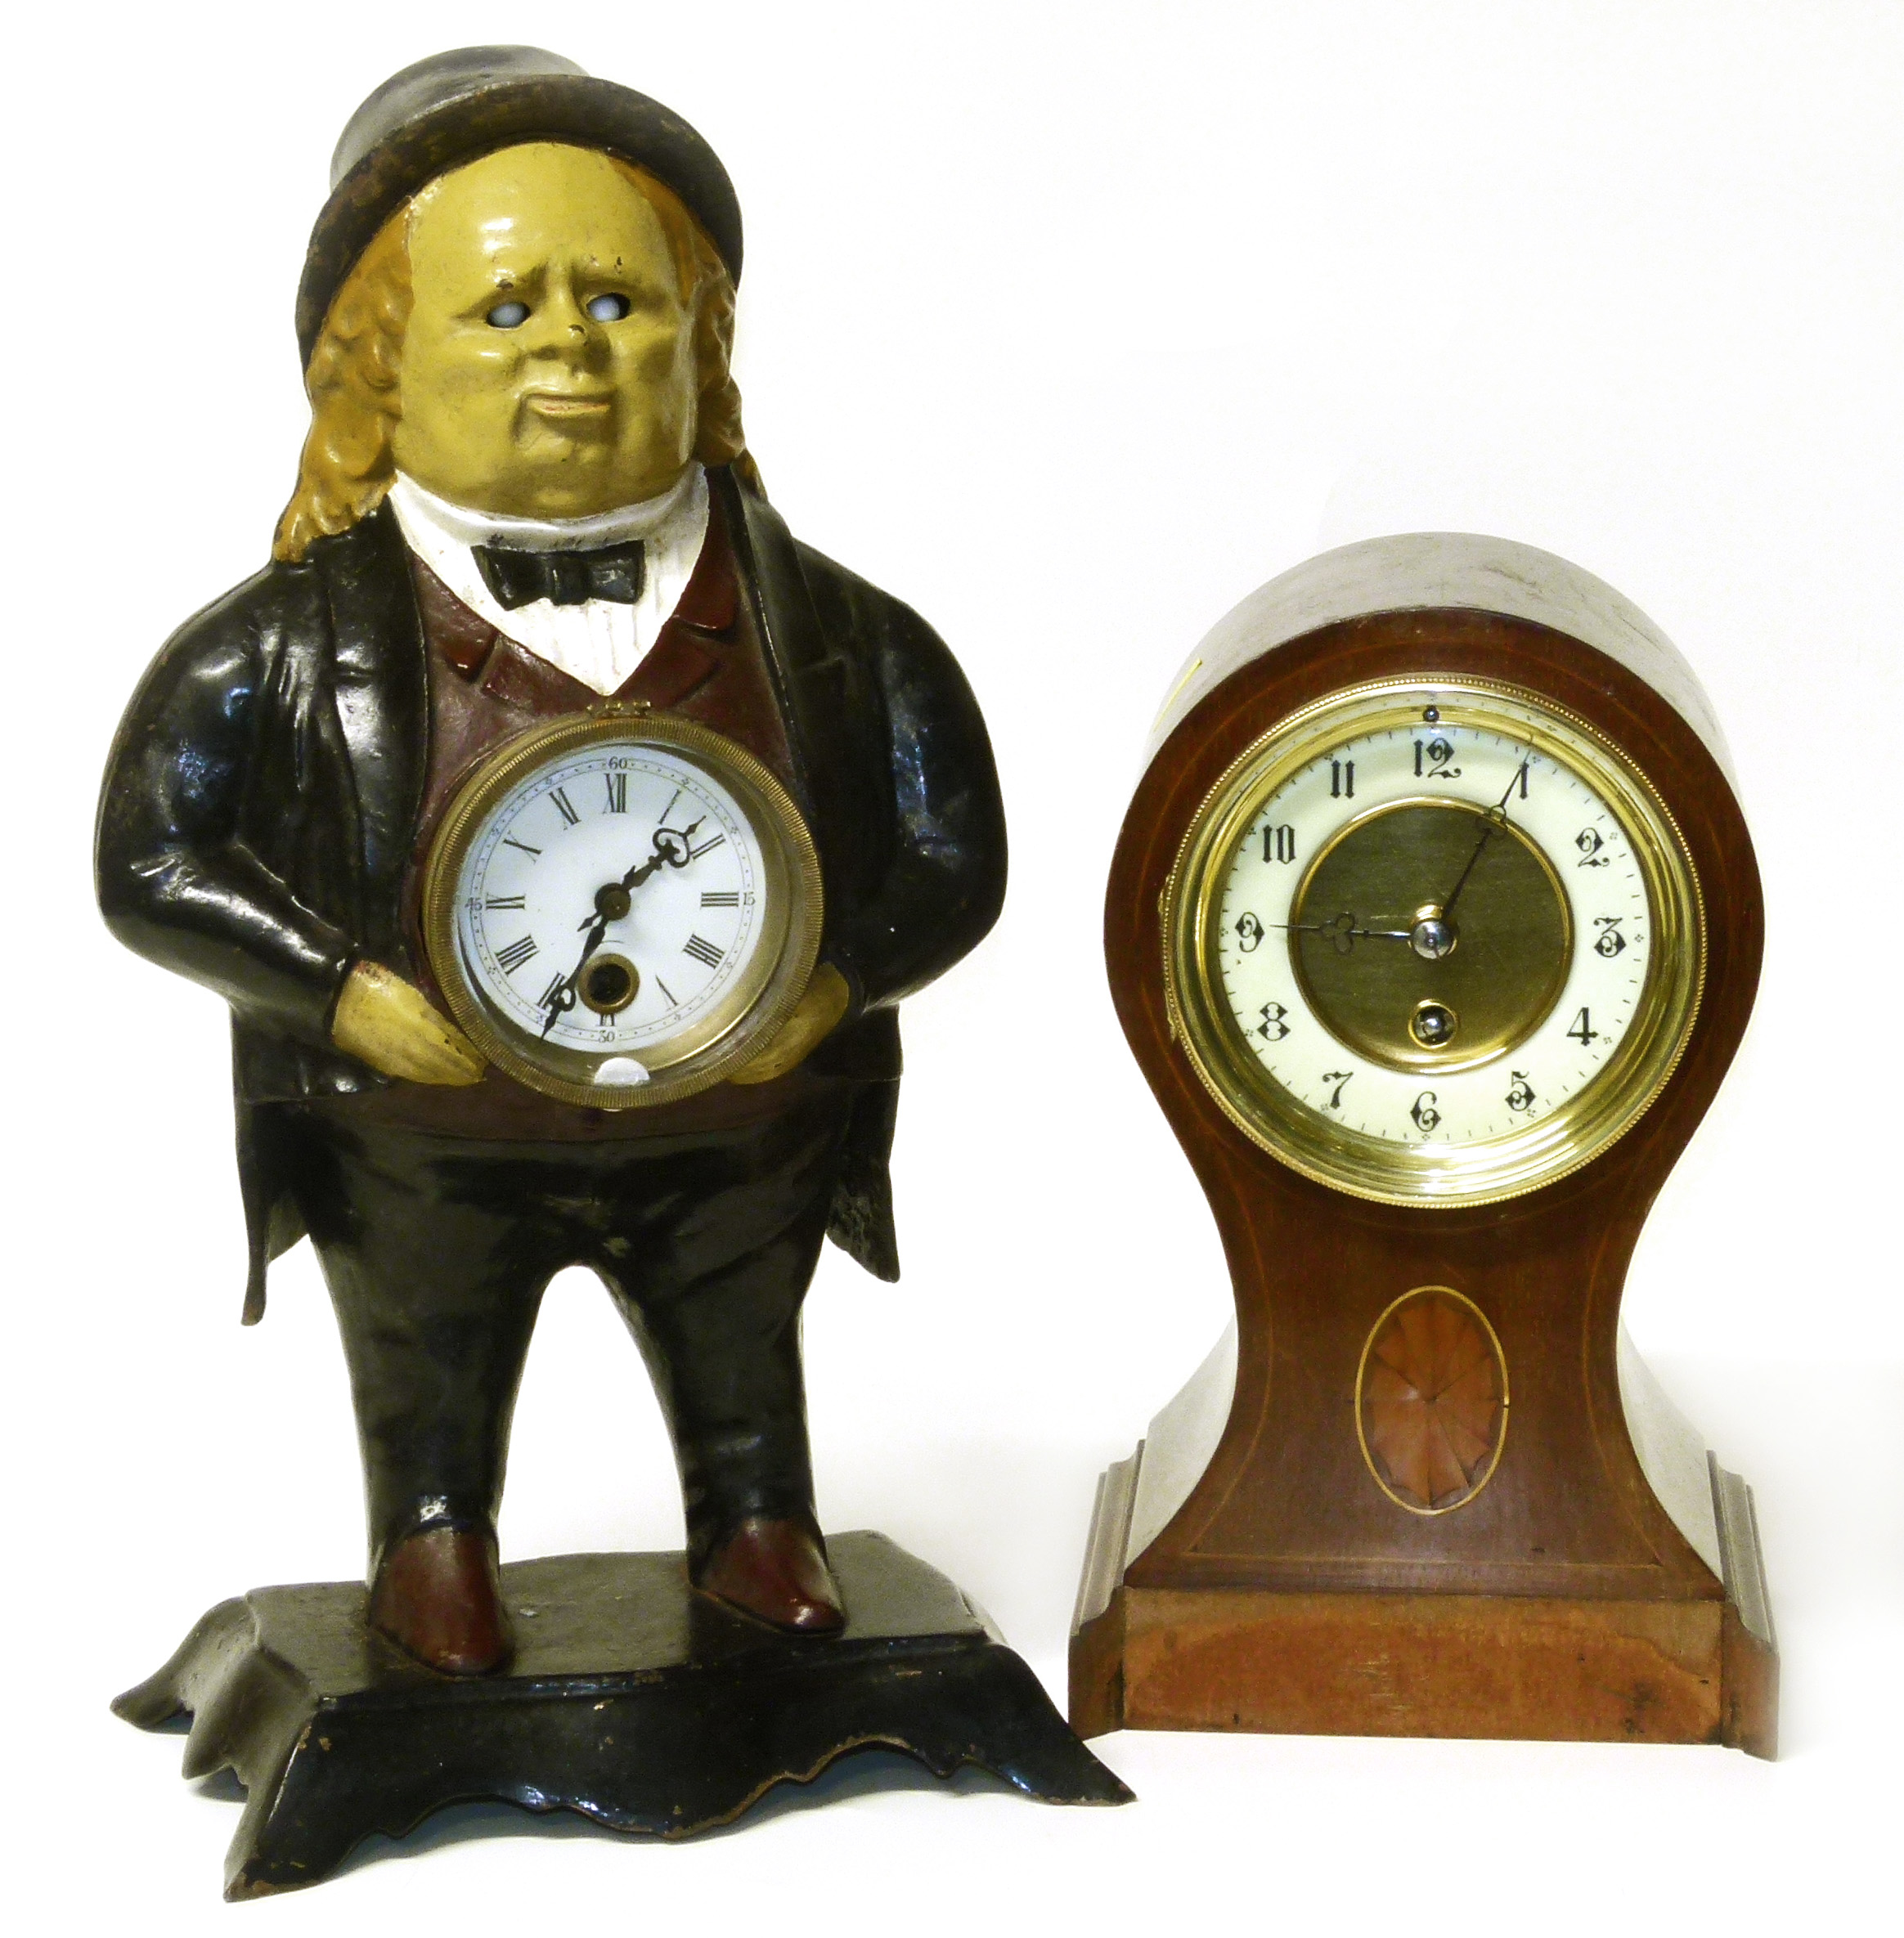 Lot 77 - Cast iron clock and a balloon clock We are unable to do condition reports on our Interiors Sale